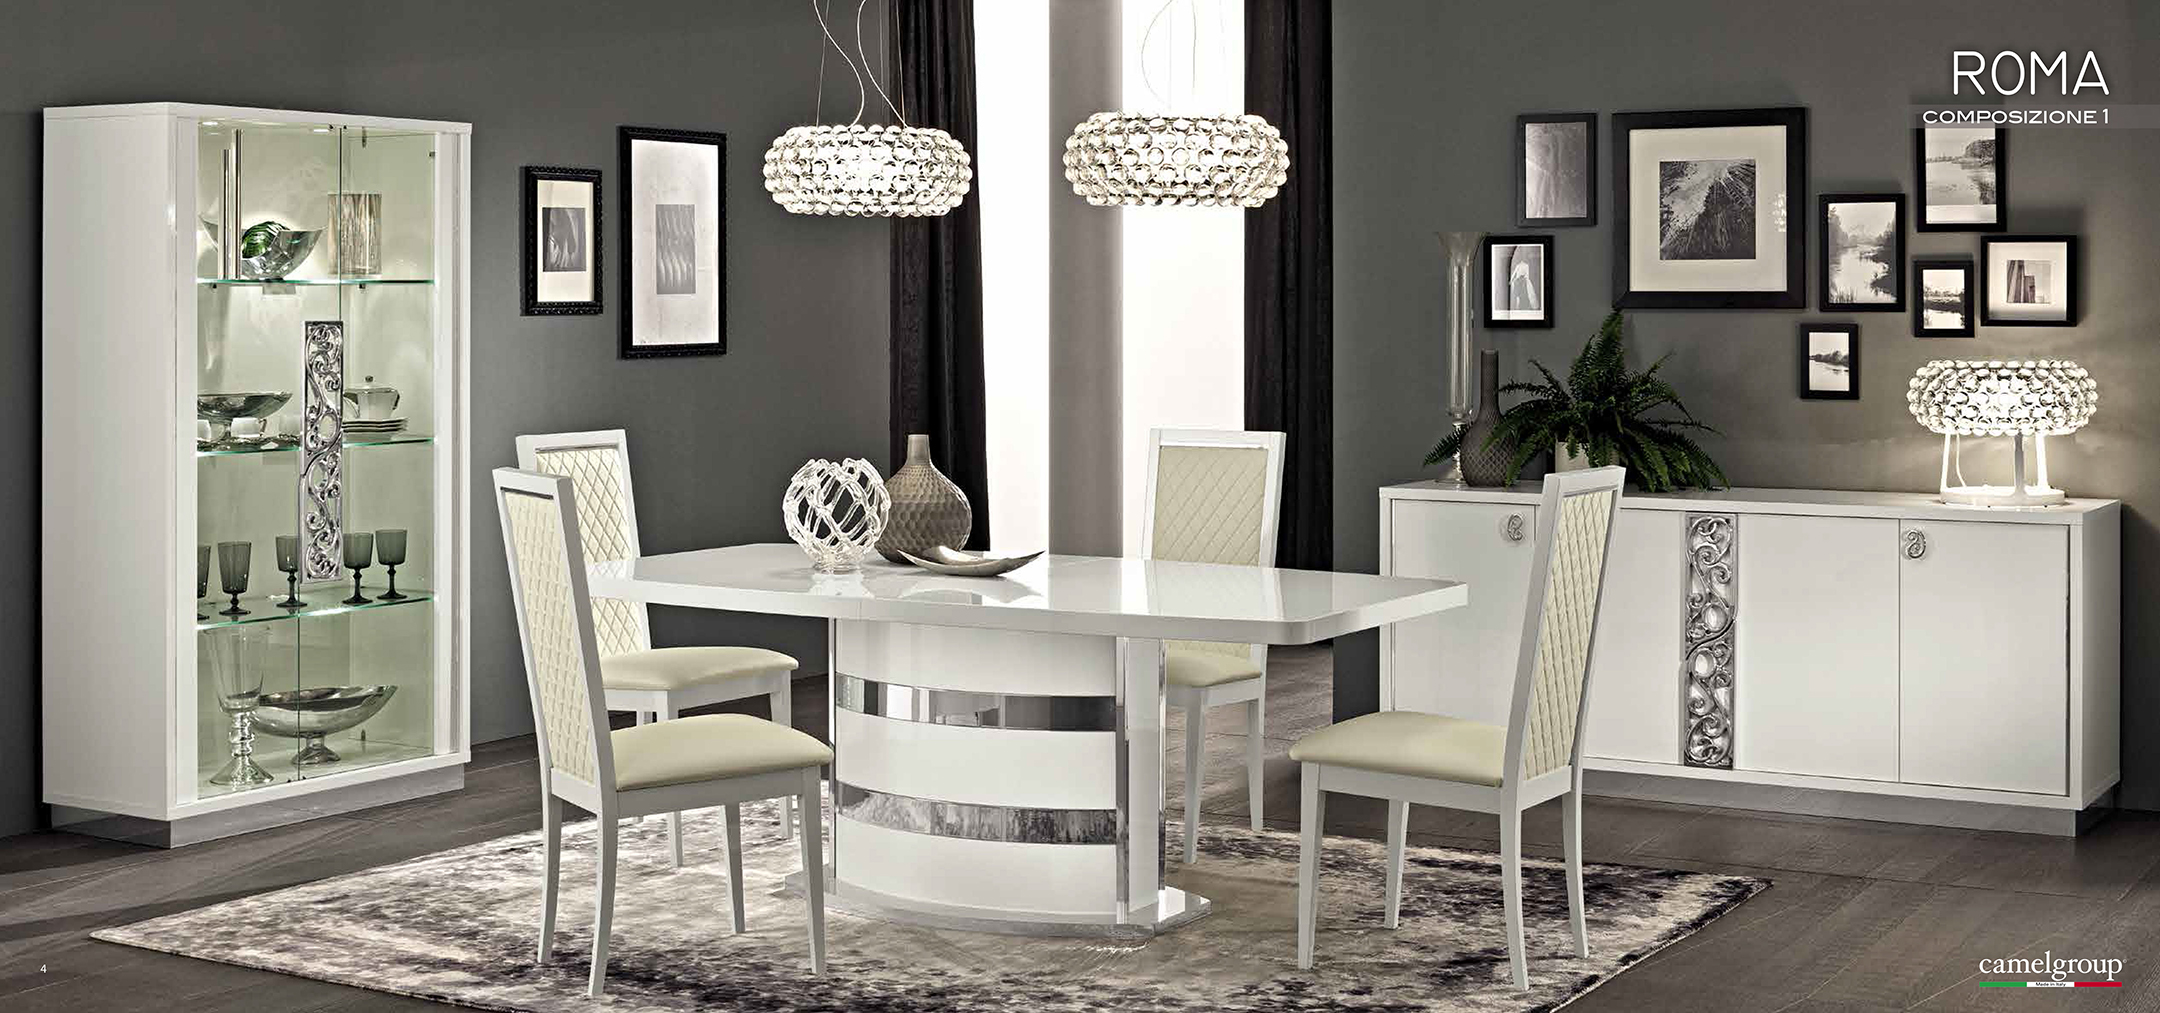 contemporary italian dining room furniture. Details And Dimensions Contemporary Italian Dining Room Furniture T